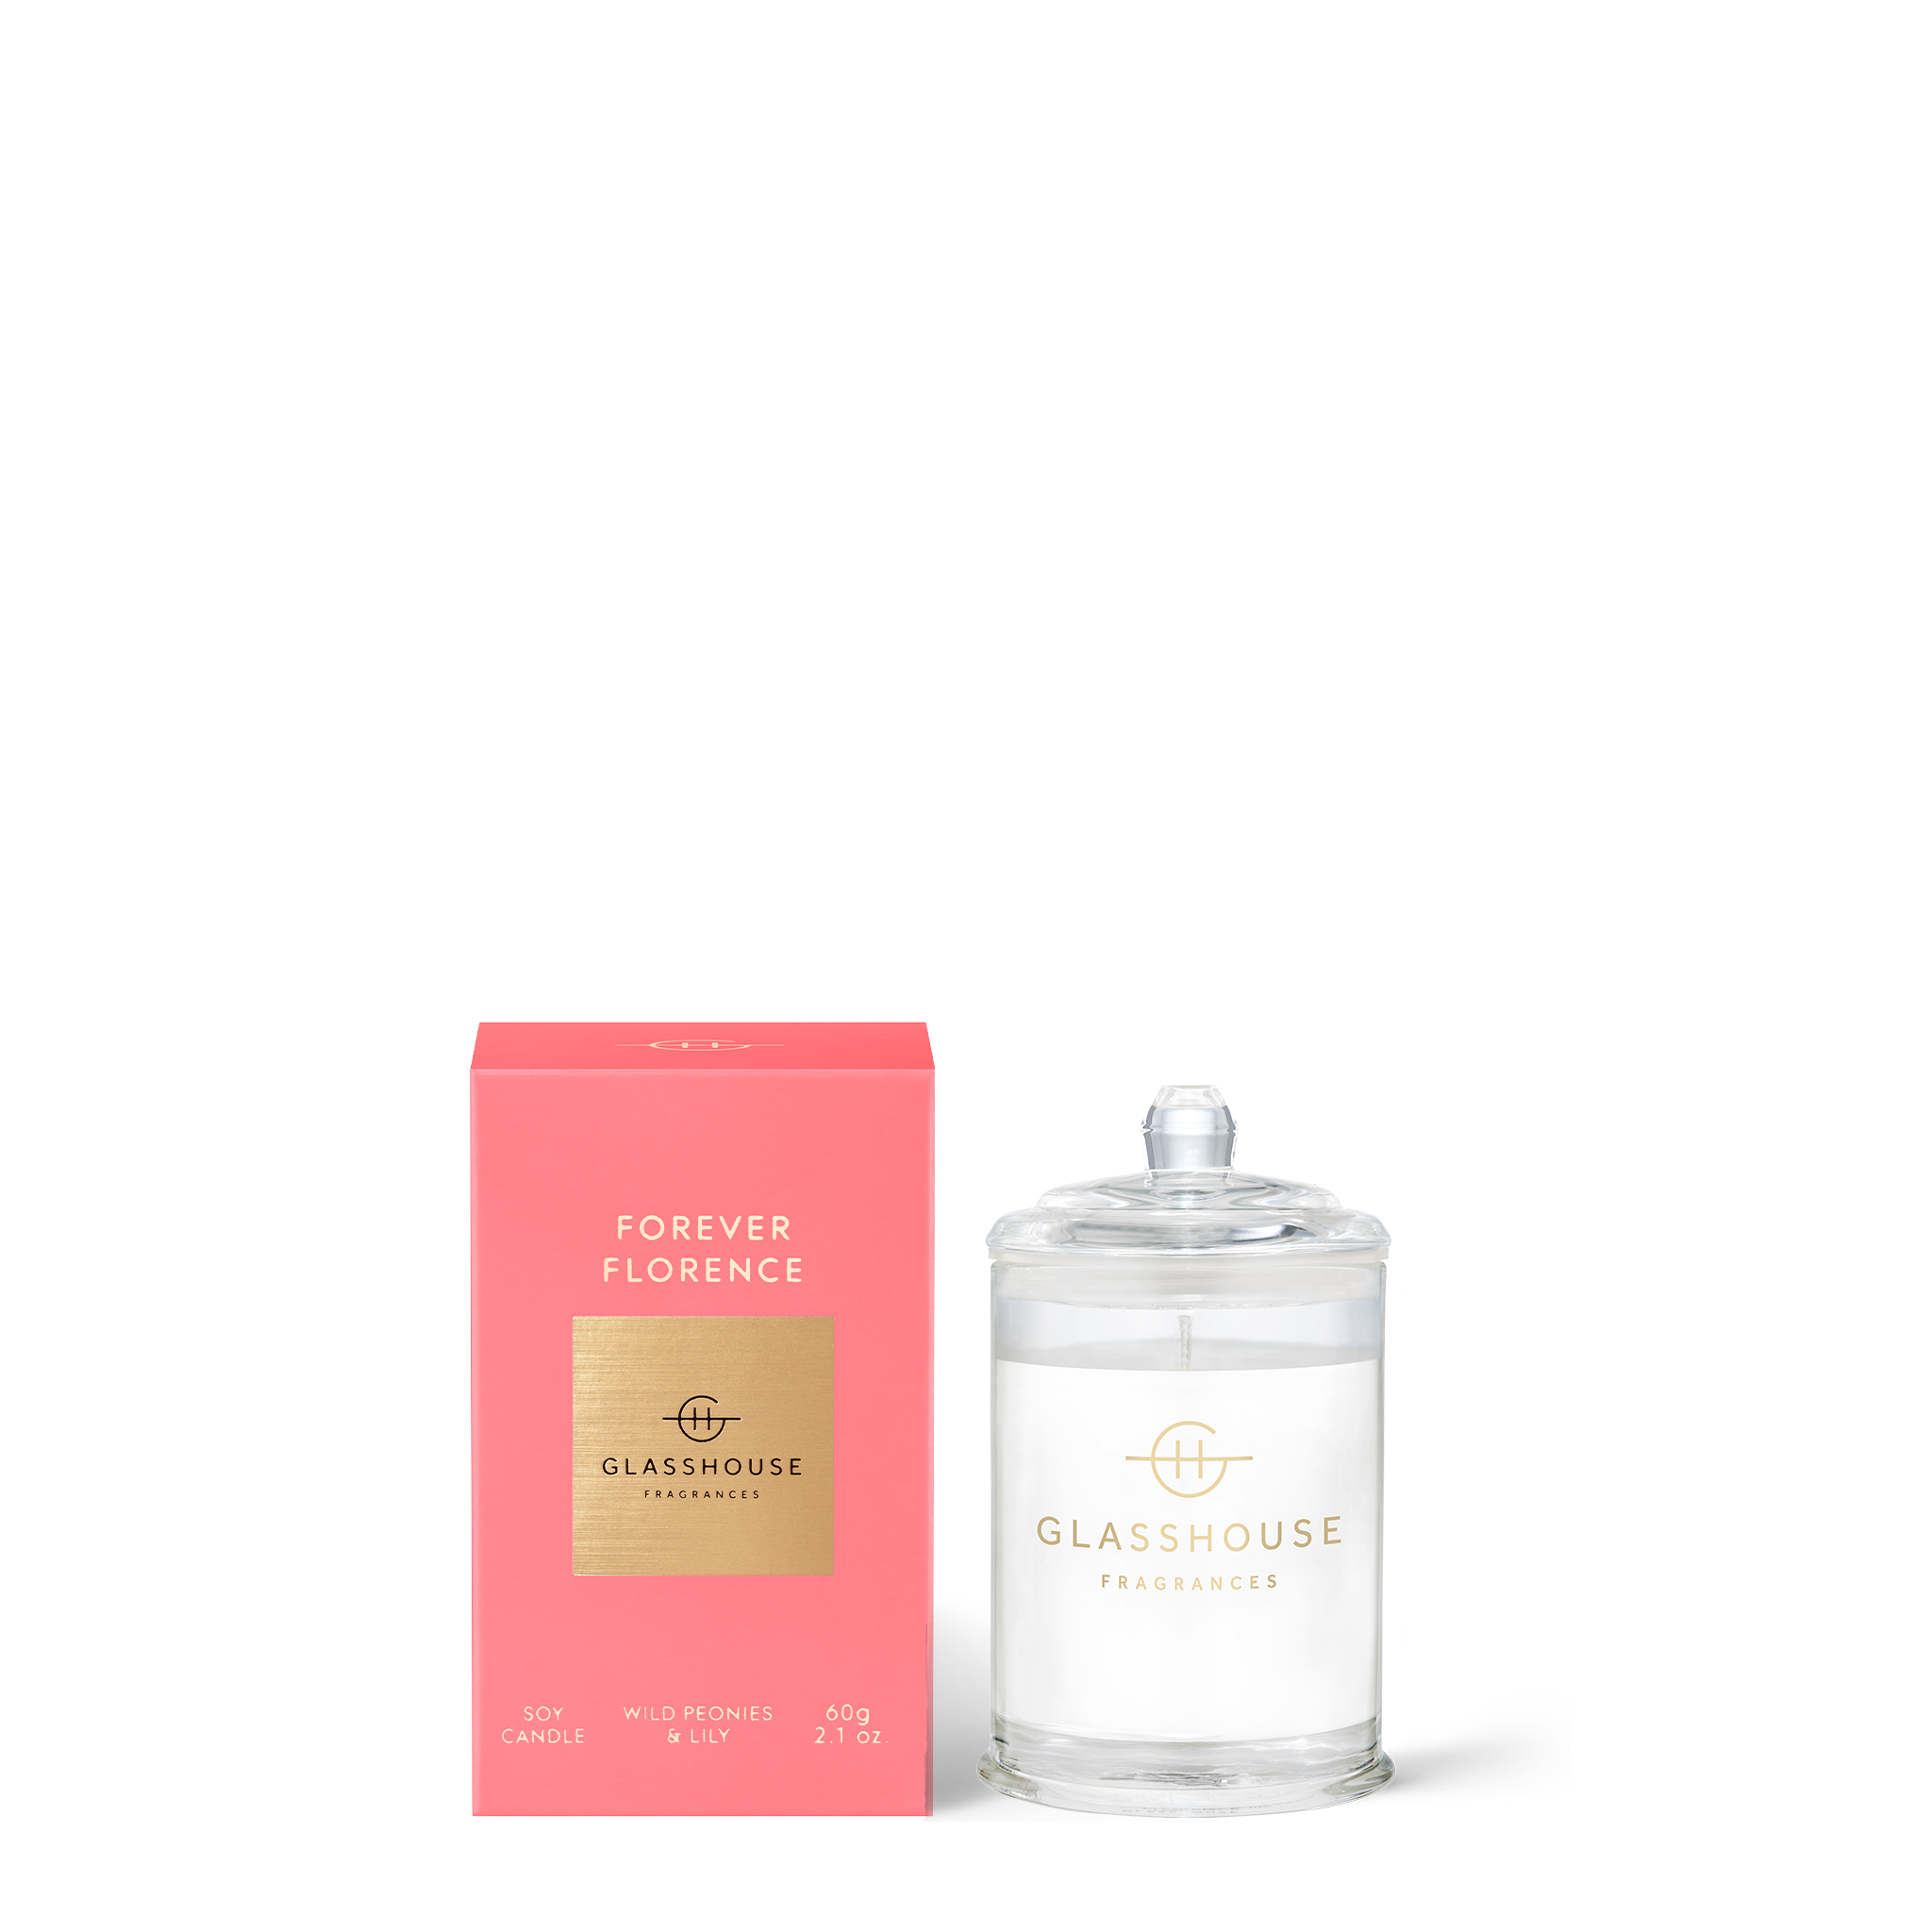 GLASSHOUSE FRAGRANCES Forever Florence 60g Candle